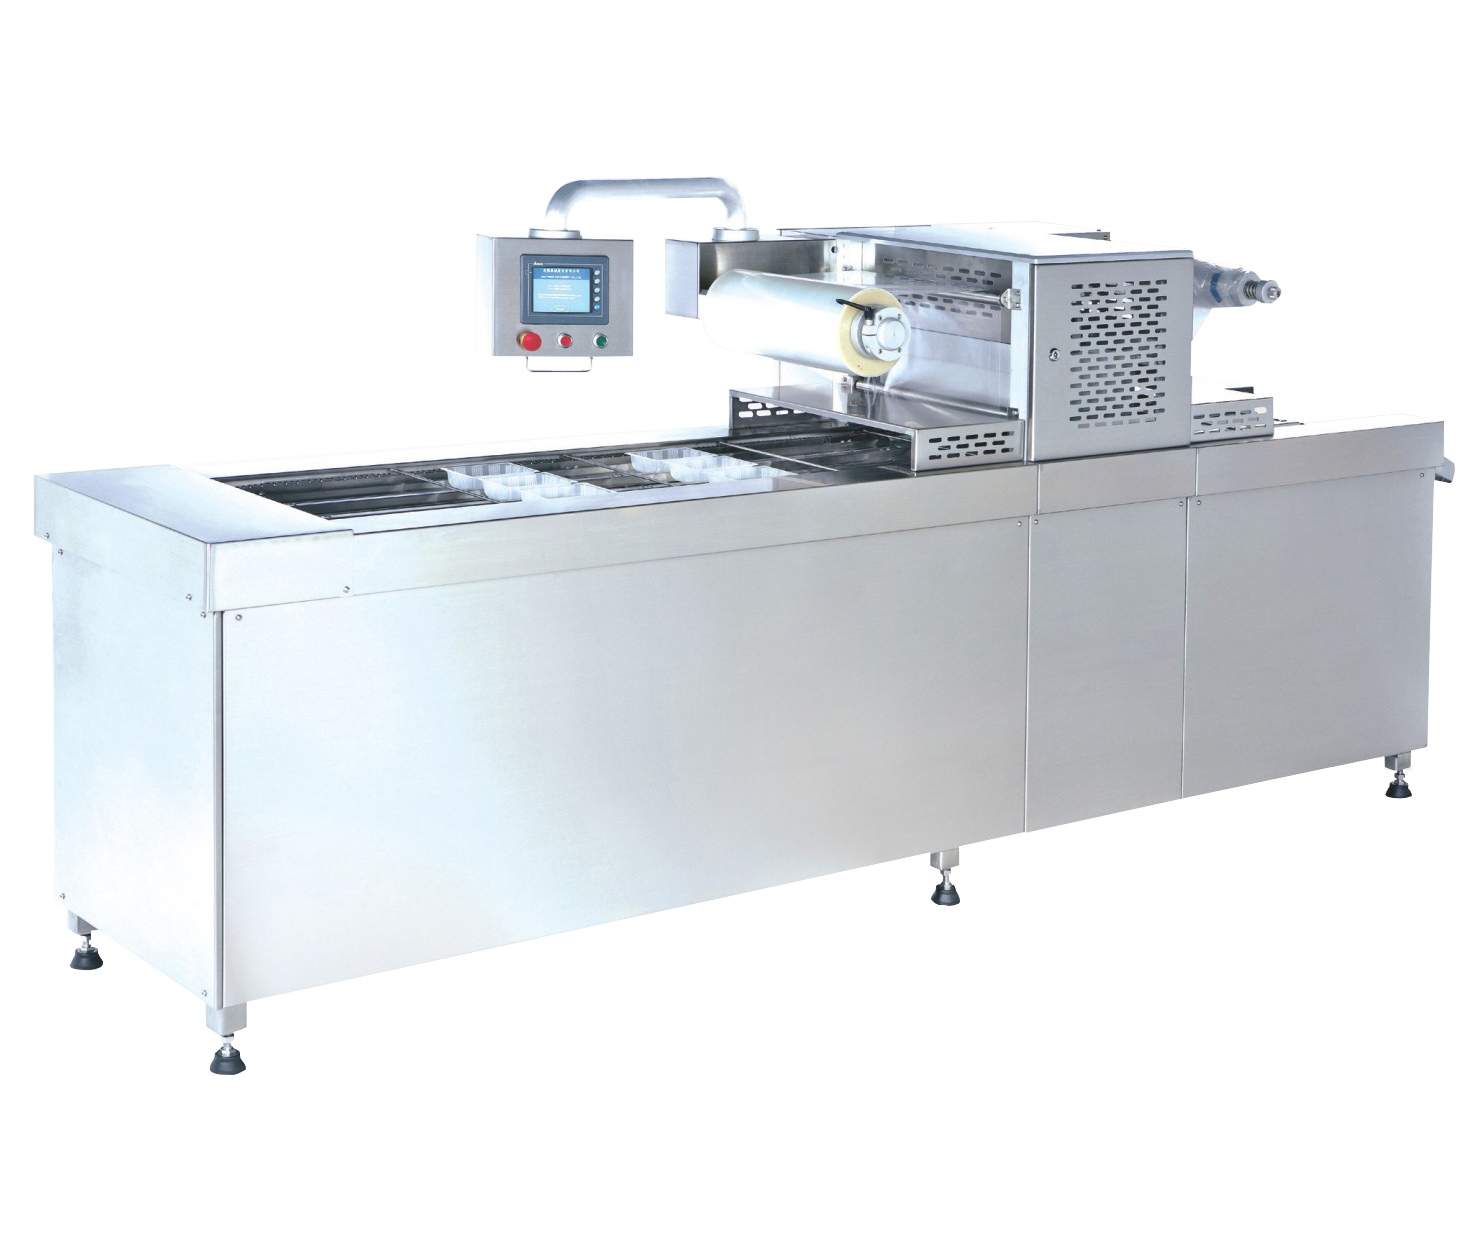 Automatic Tray Sealer with Vacuum and Gas Flushing - J-V056CA. Automatic Tray Sealer with Vacuum and Gas Flushing